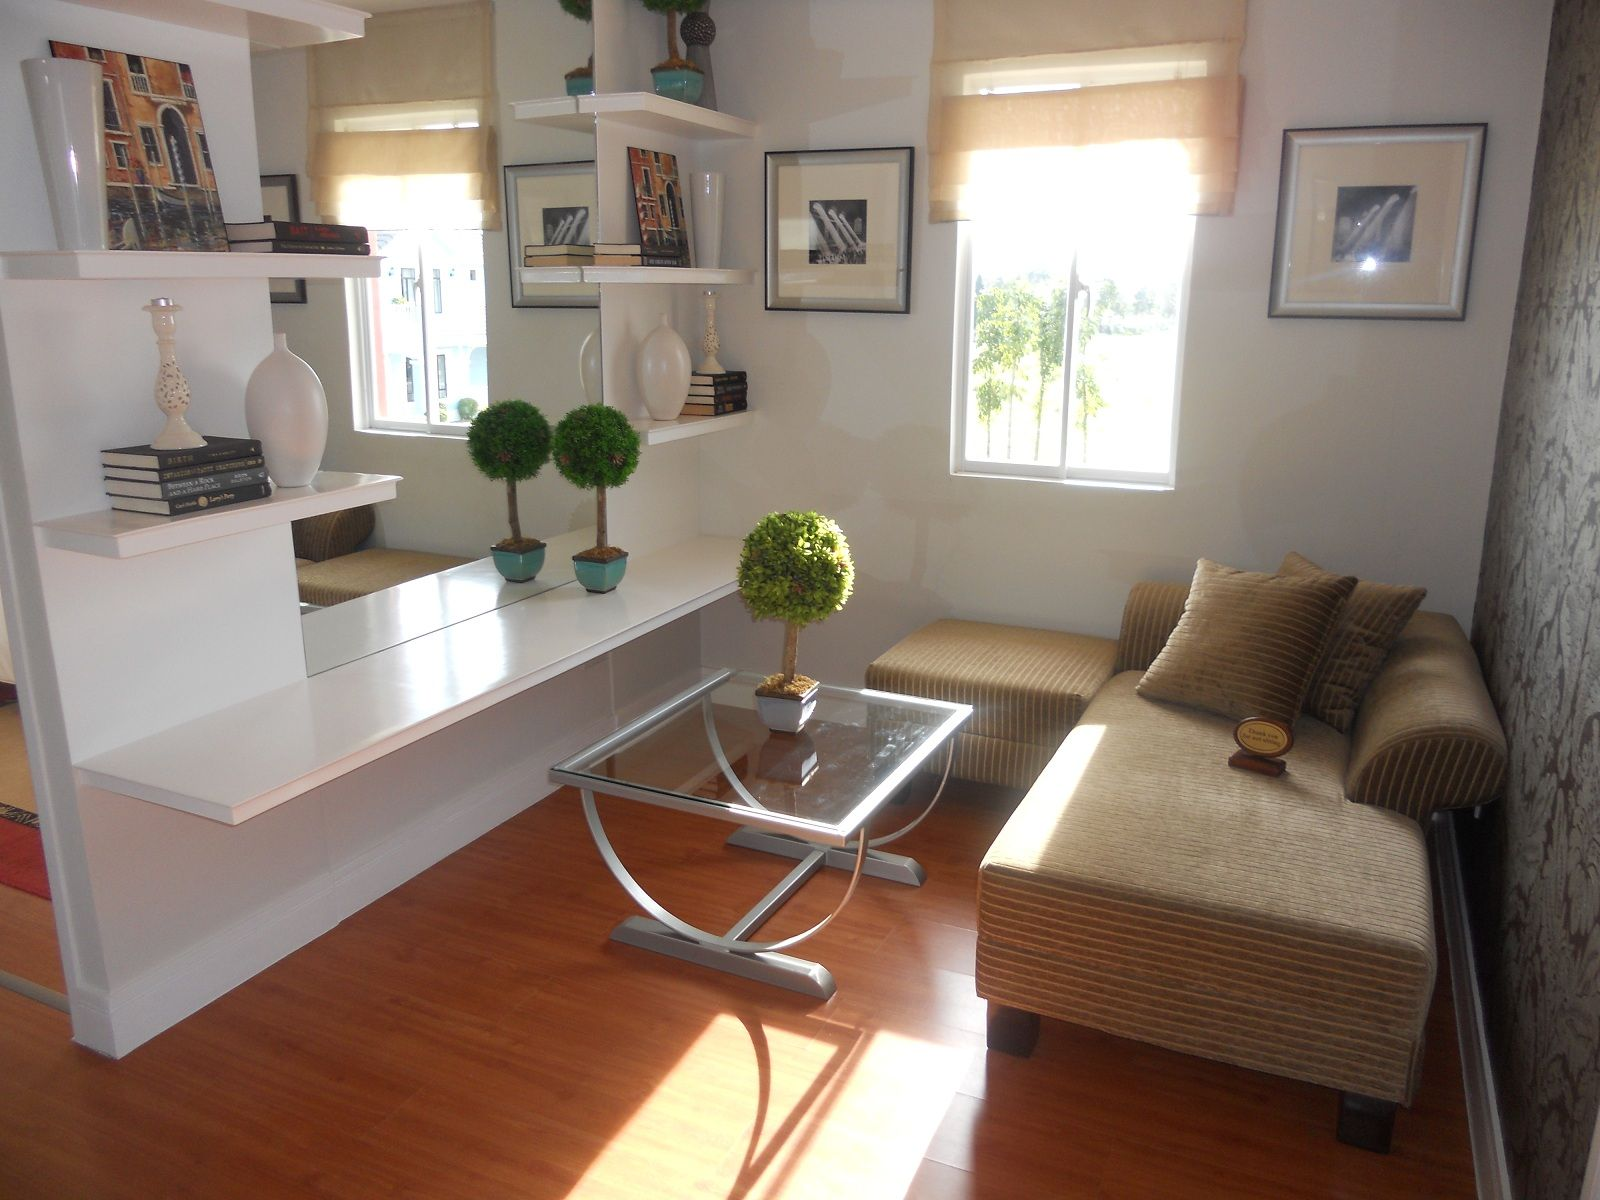 Simple Filipino Living Room Designs Google Search Model Living Room Design Small House Interior Design Simple House Interior Design